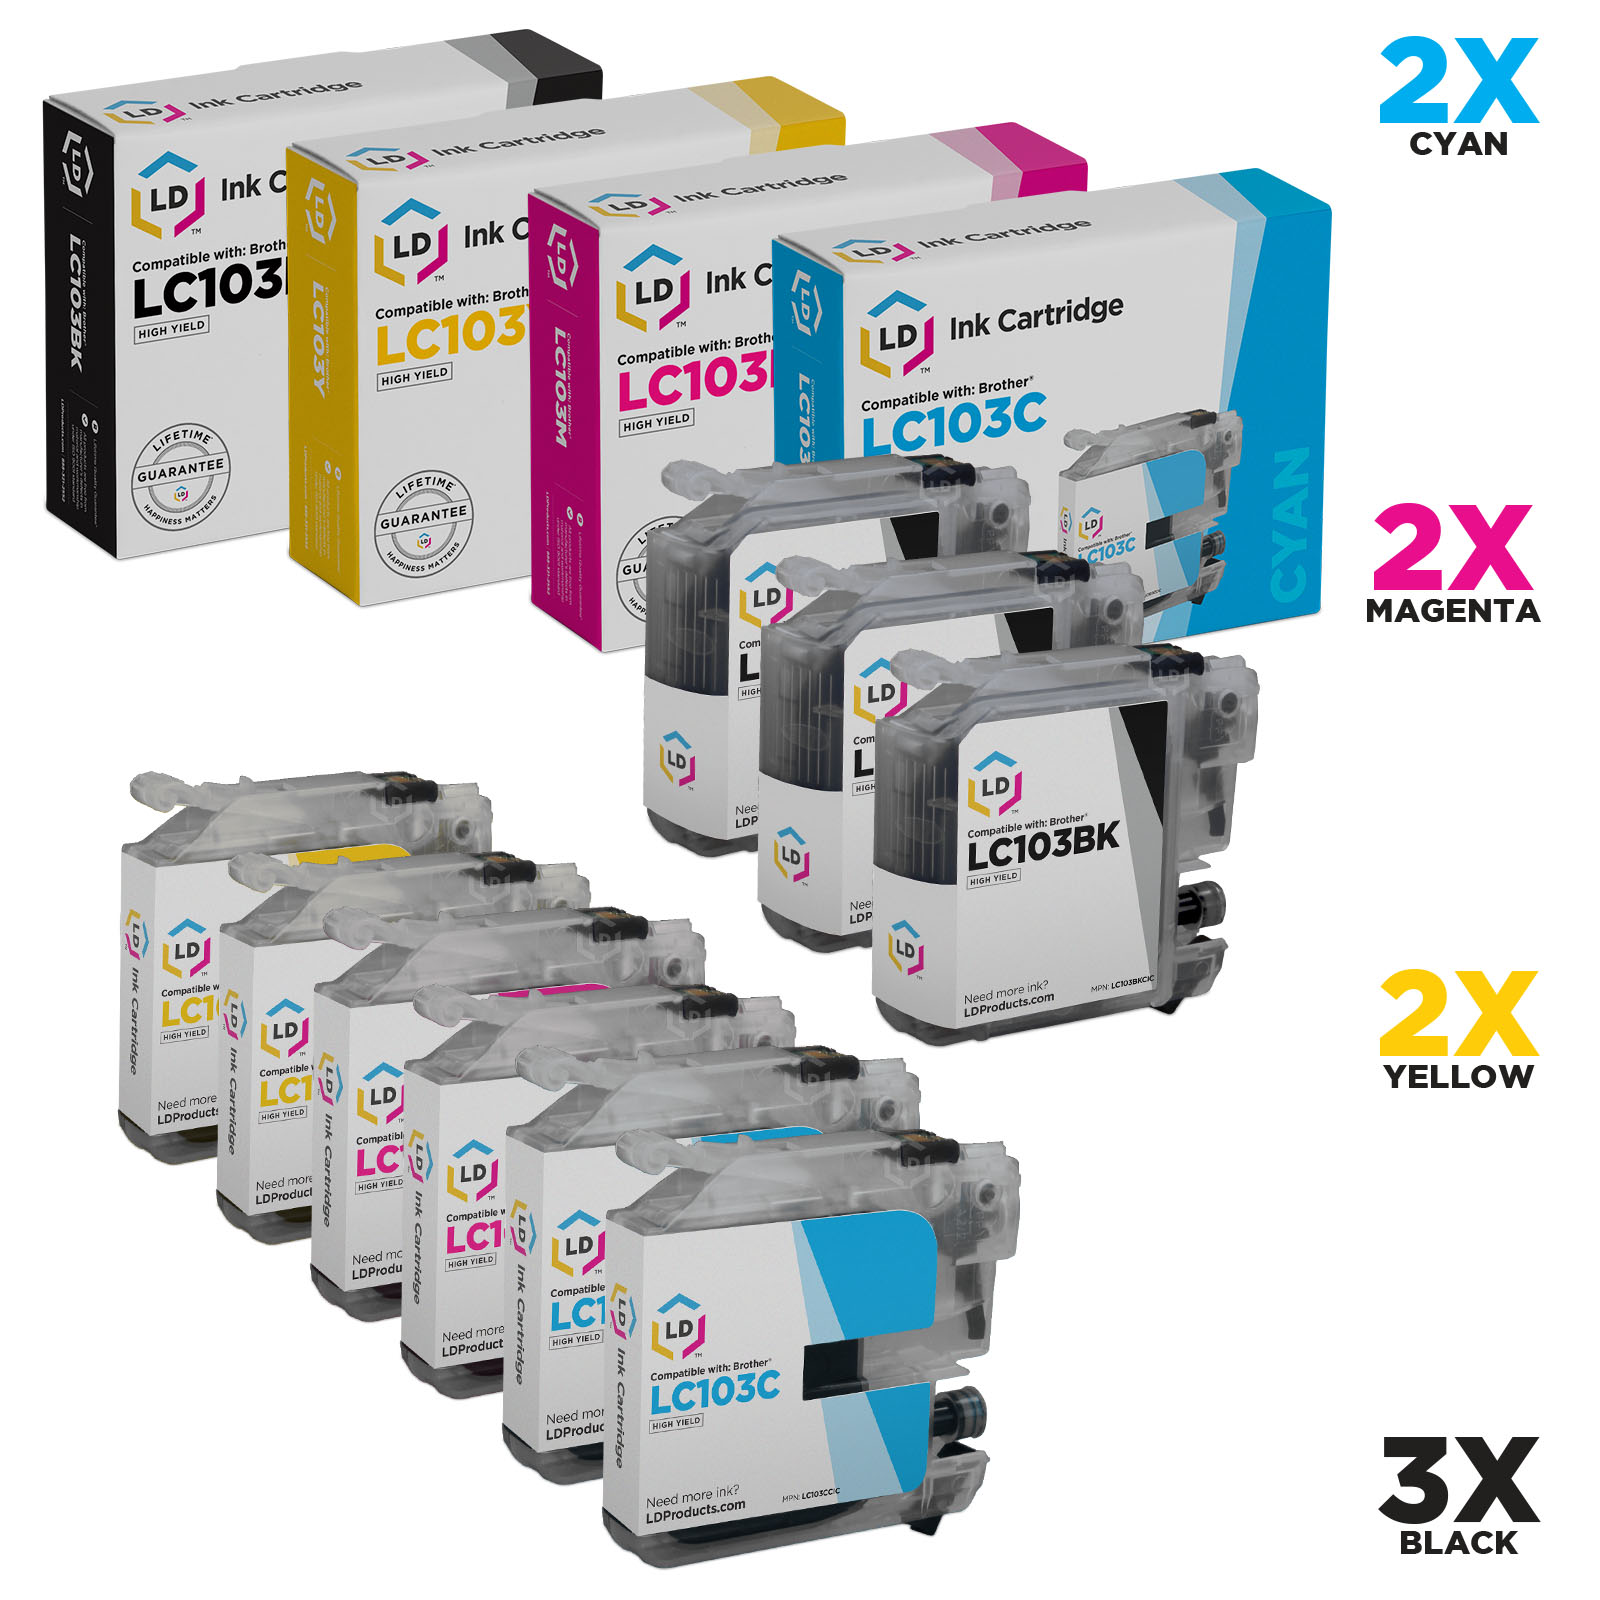 Brother Compatible LC103 Bulk Set of 9 High Yield Ink Cartridges: 3 Black & 2 each of Cyan / Magenta / Yellow